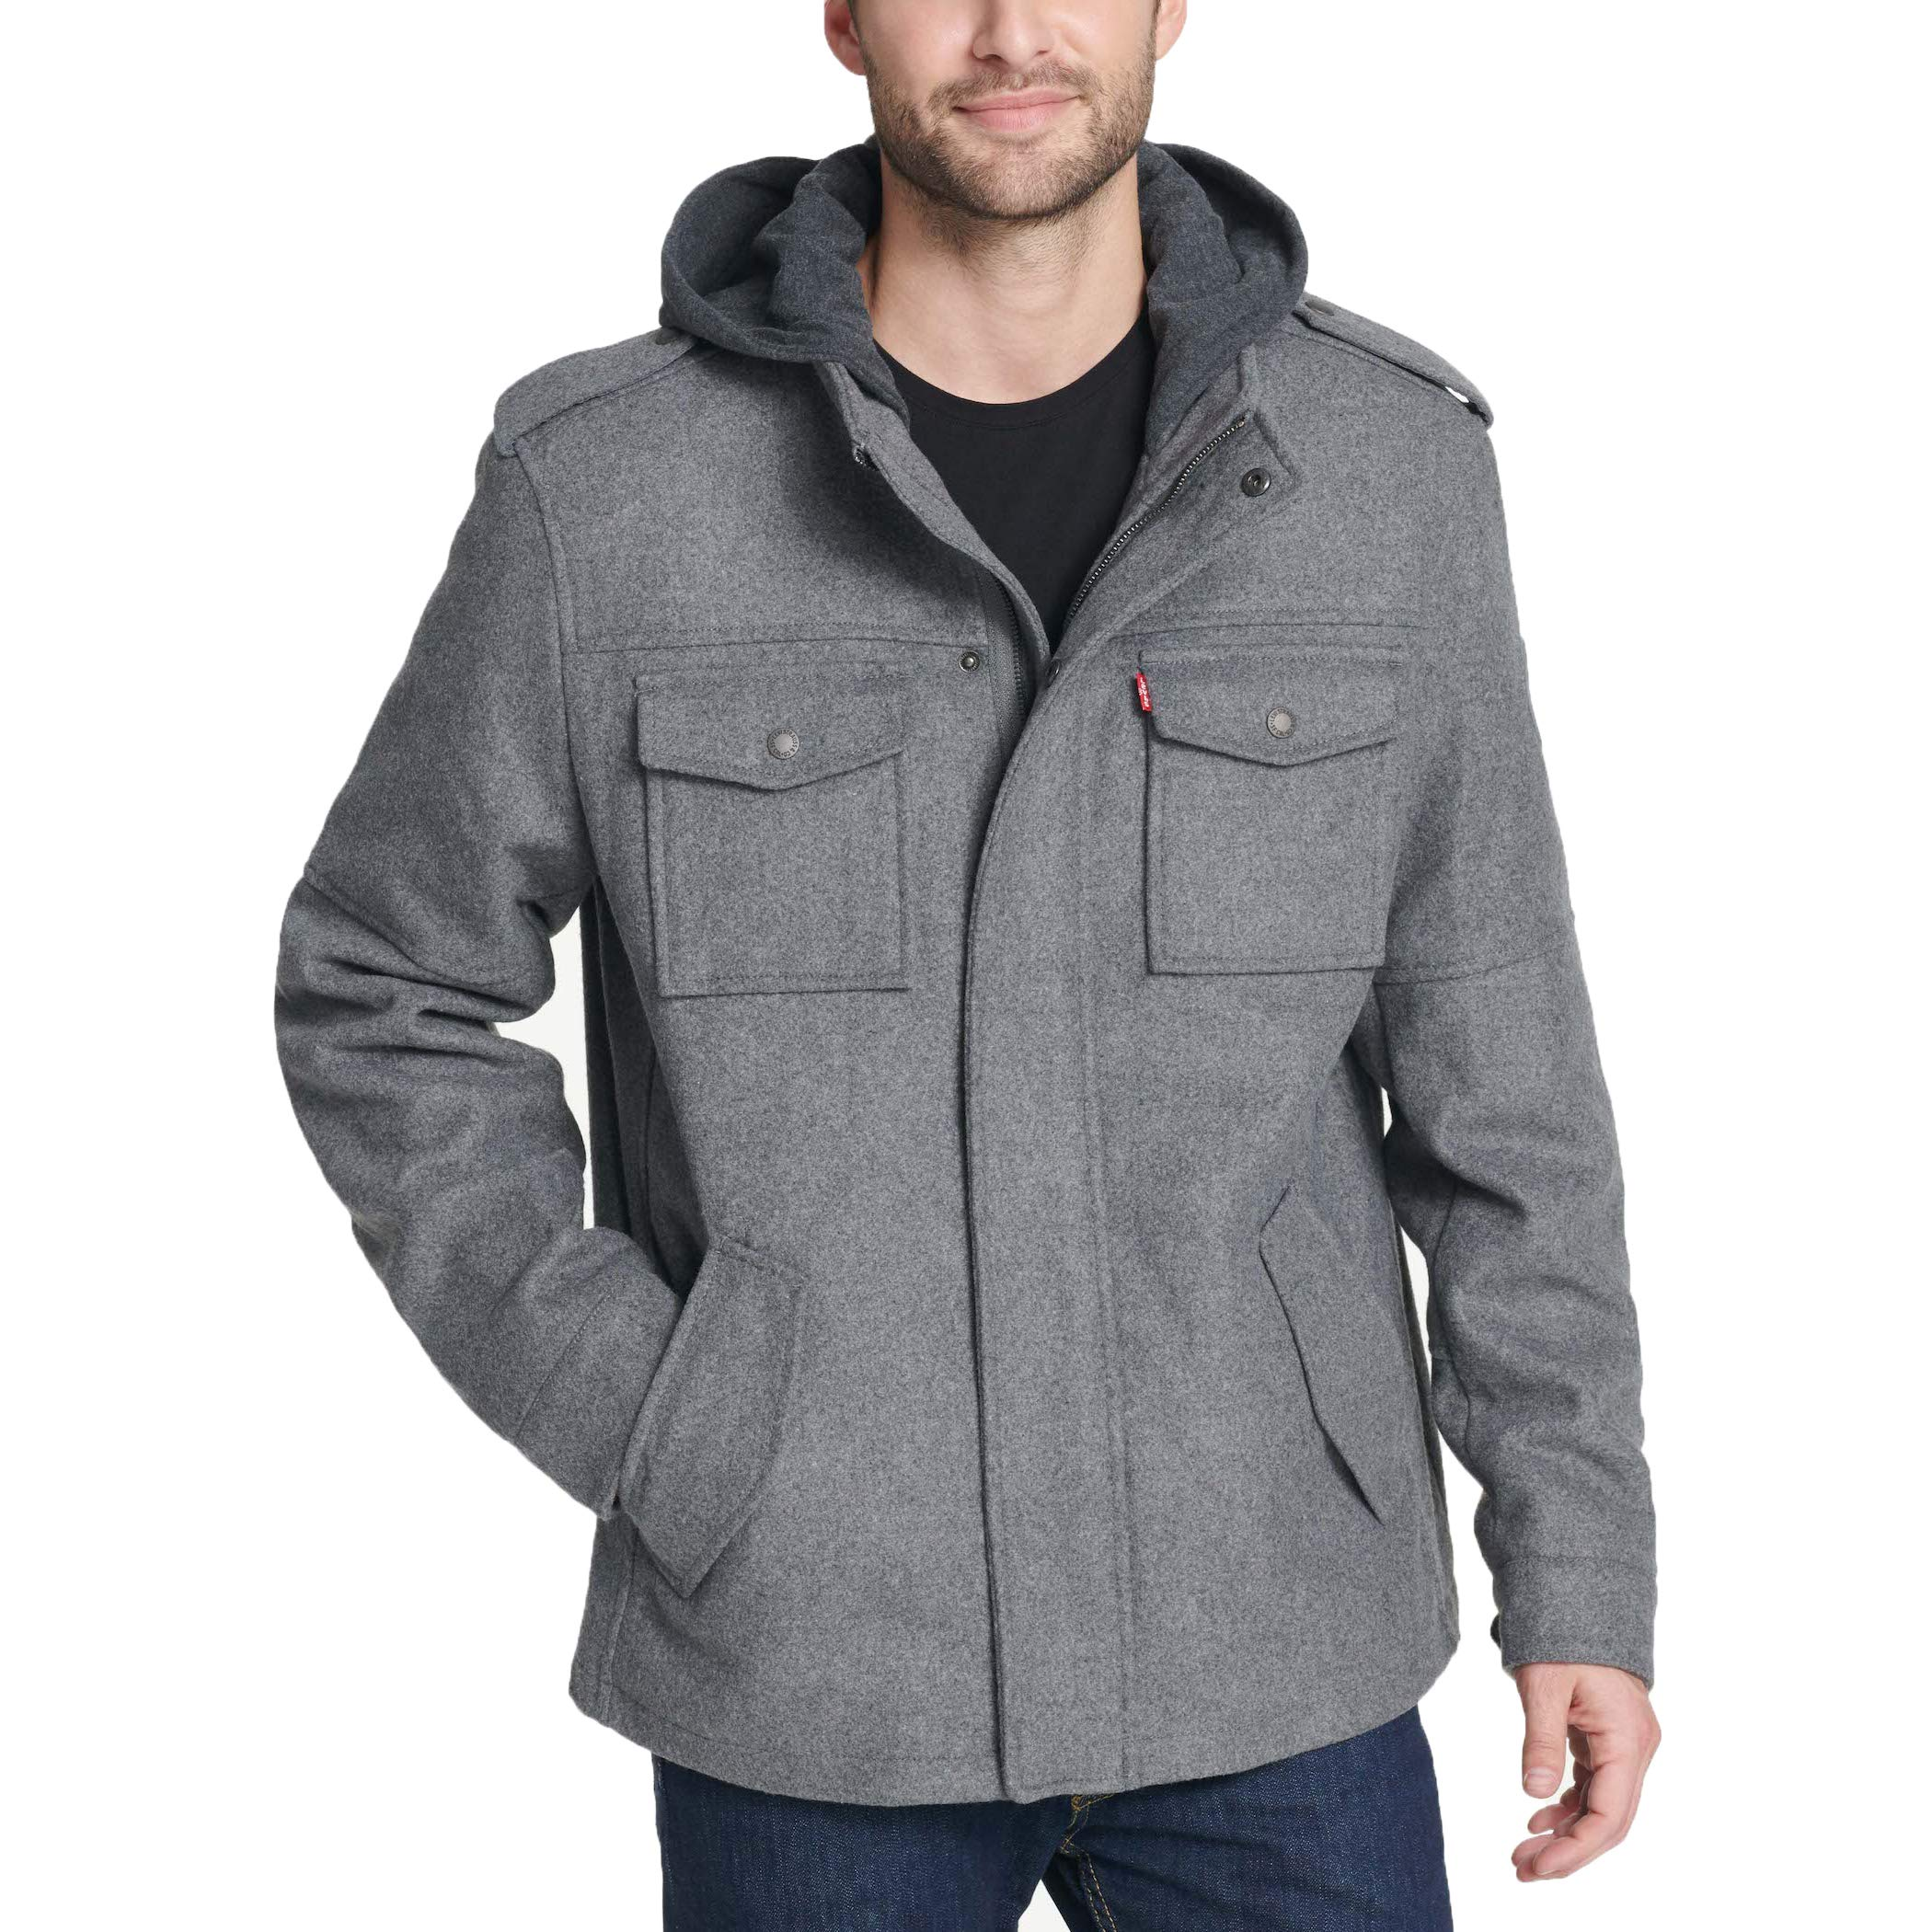 Levi's Men's Wool Blend Military Jacket with Hood, Light Grey, XX-Large by Levi's